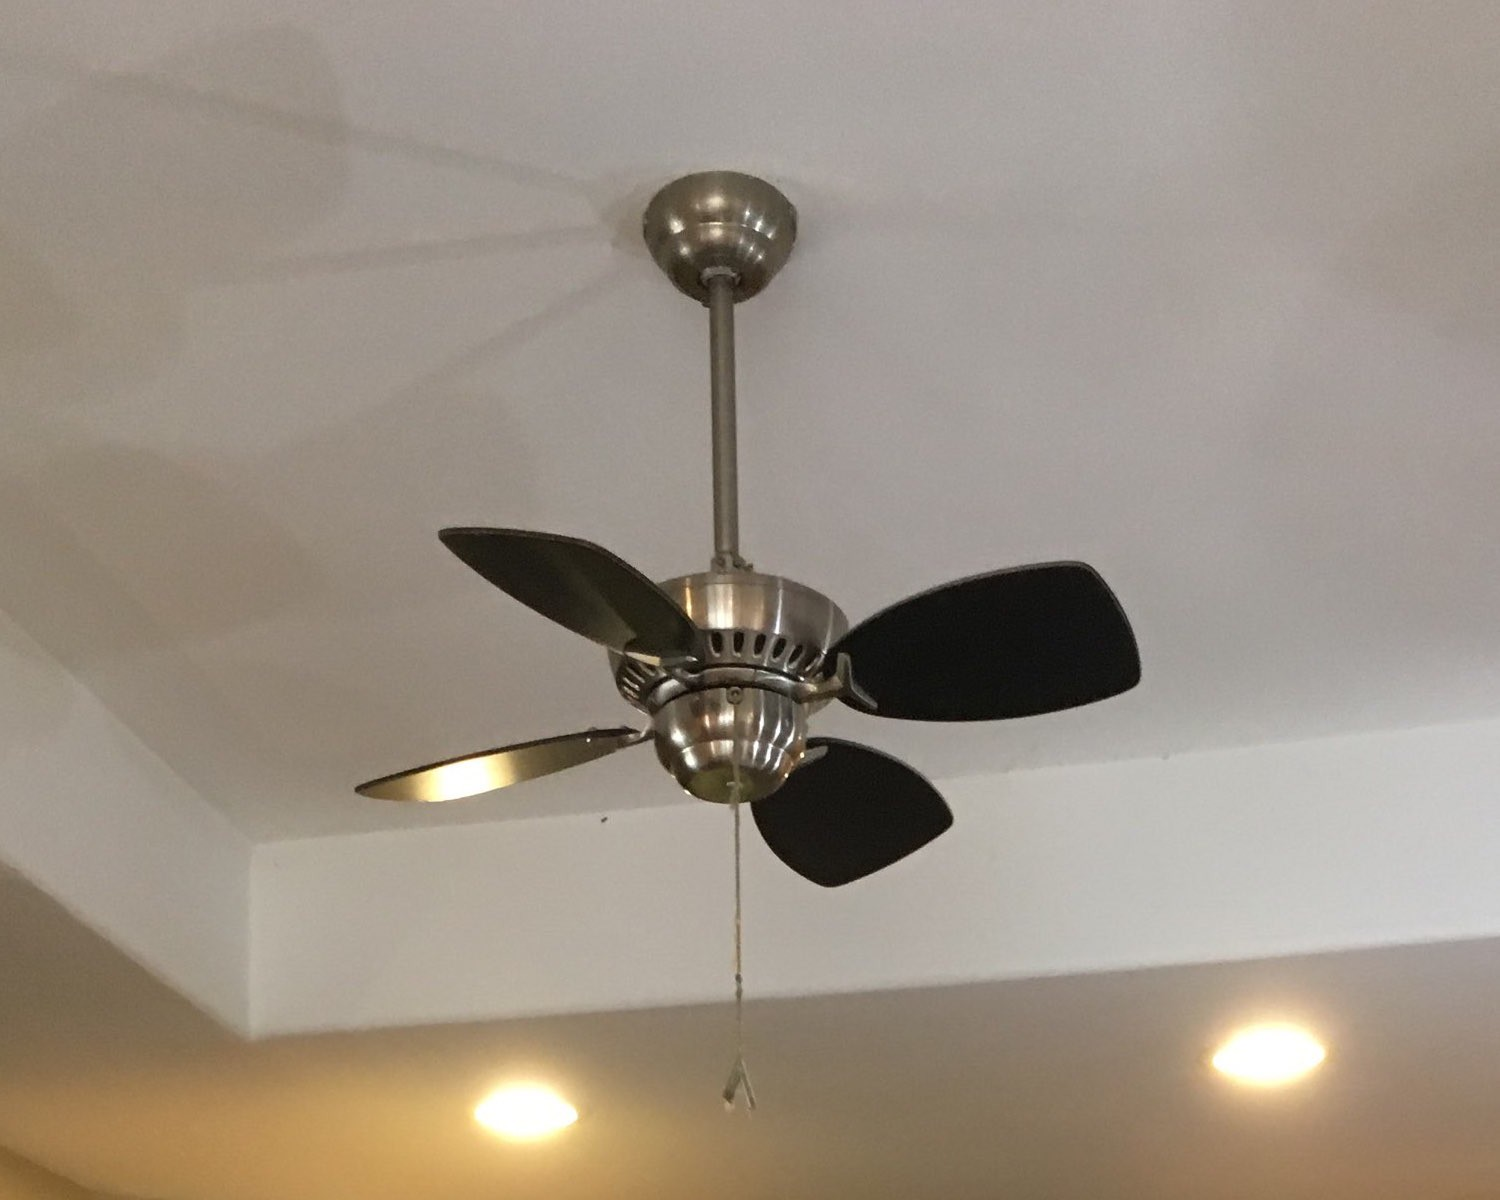 small resolution of 7 things you may not know about ceiling fans